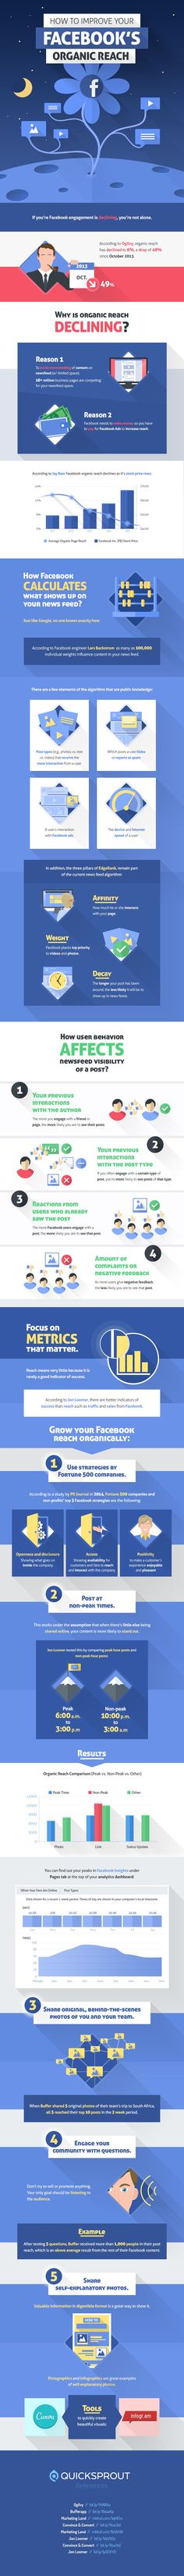 #SocialMedia Marketing: How to Improve Your Facebook's Organic Reach - #Infographic